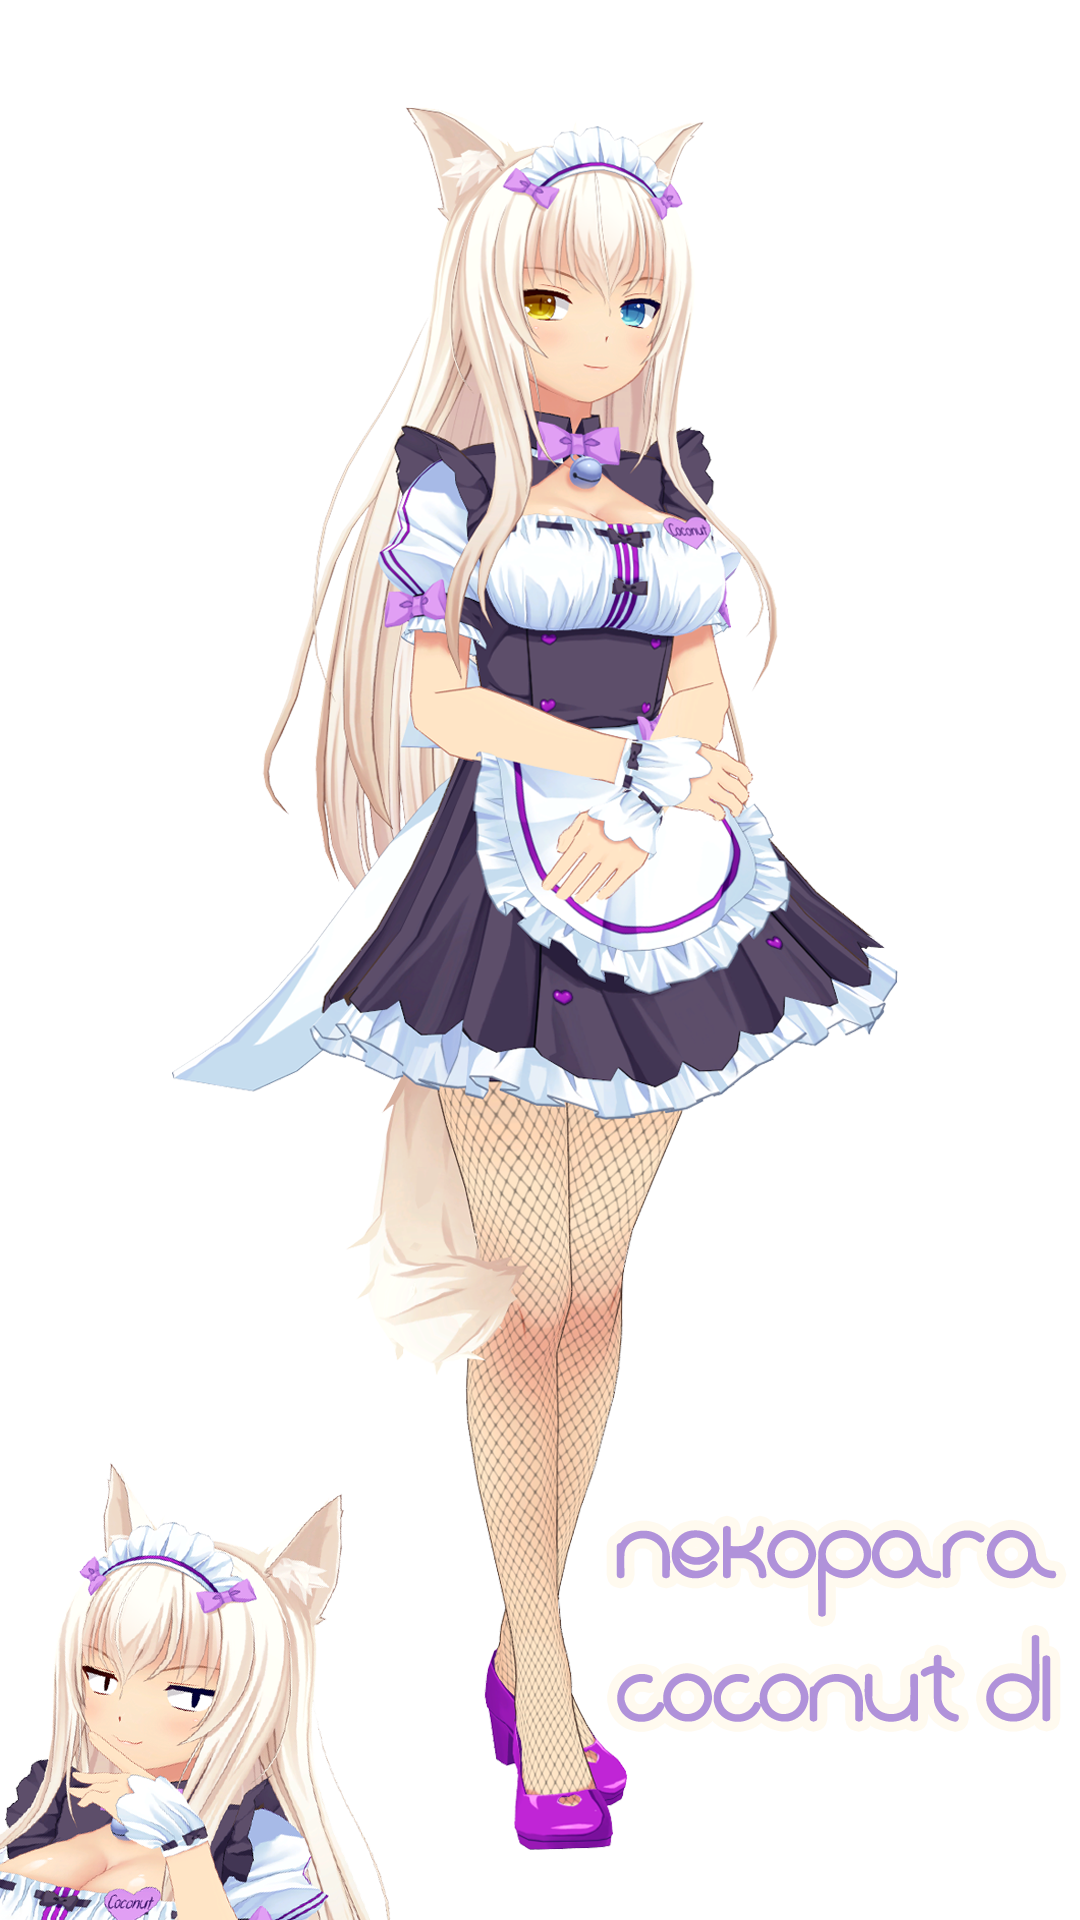 [MMD MODEL DL] Nekopara Coconut